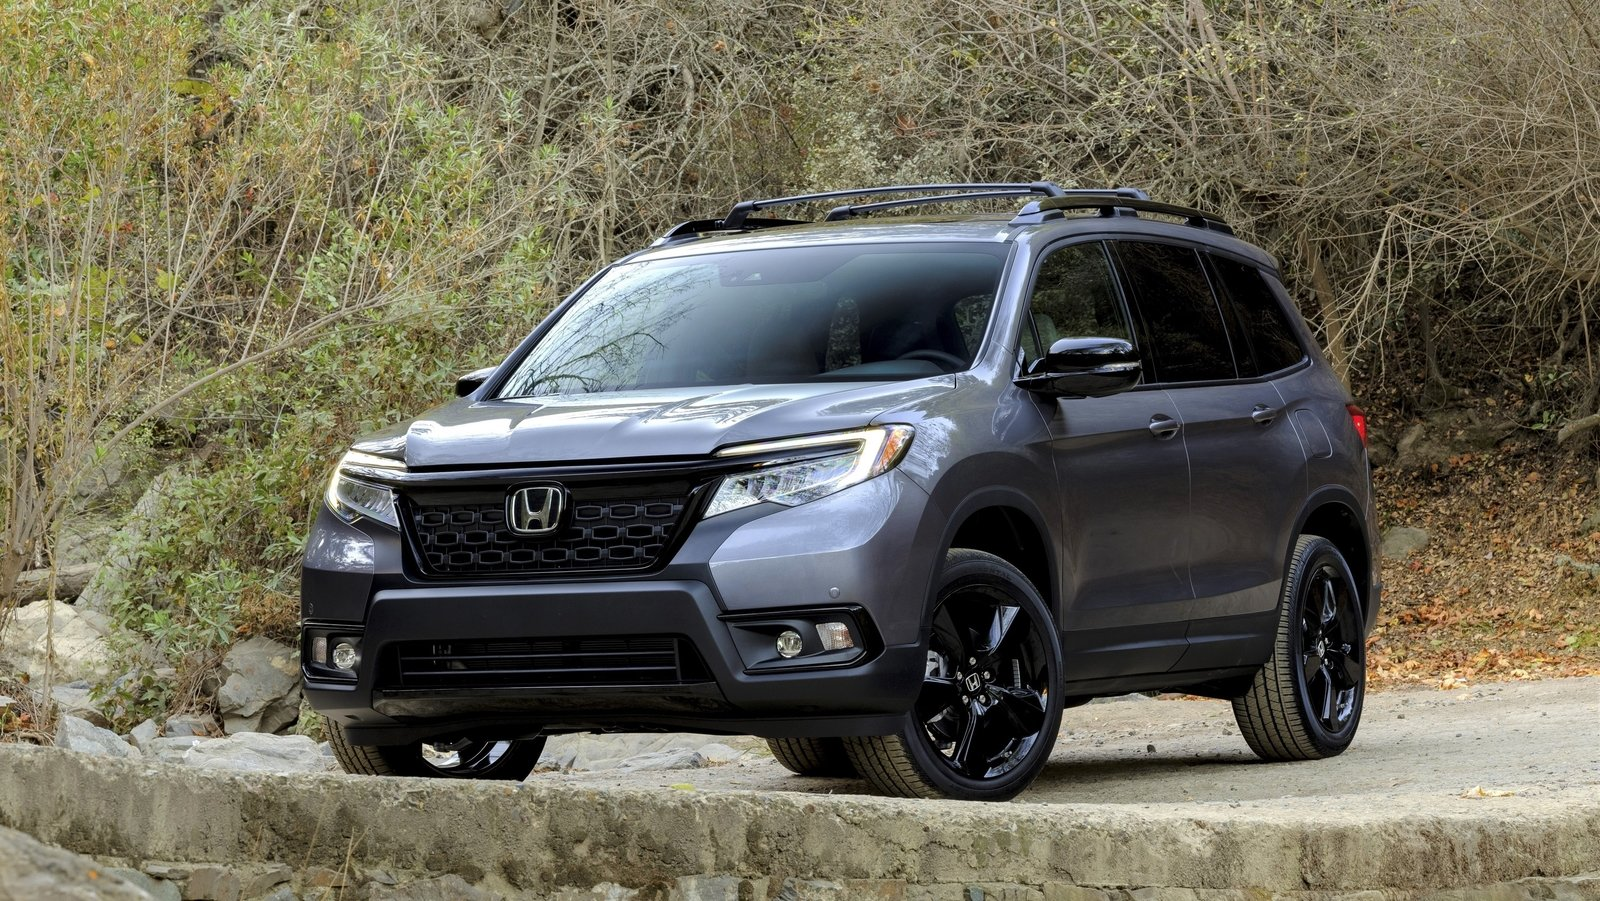 5 Reasons Why The 2019 Honda Passport Is Better Than The Old One   Top Speed